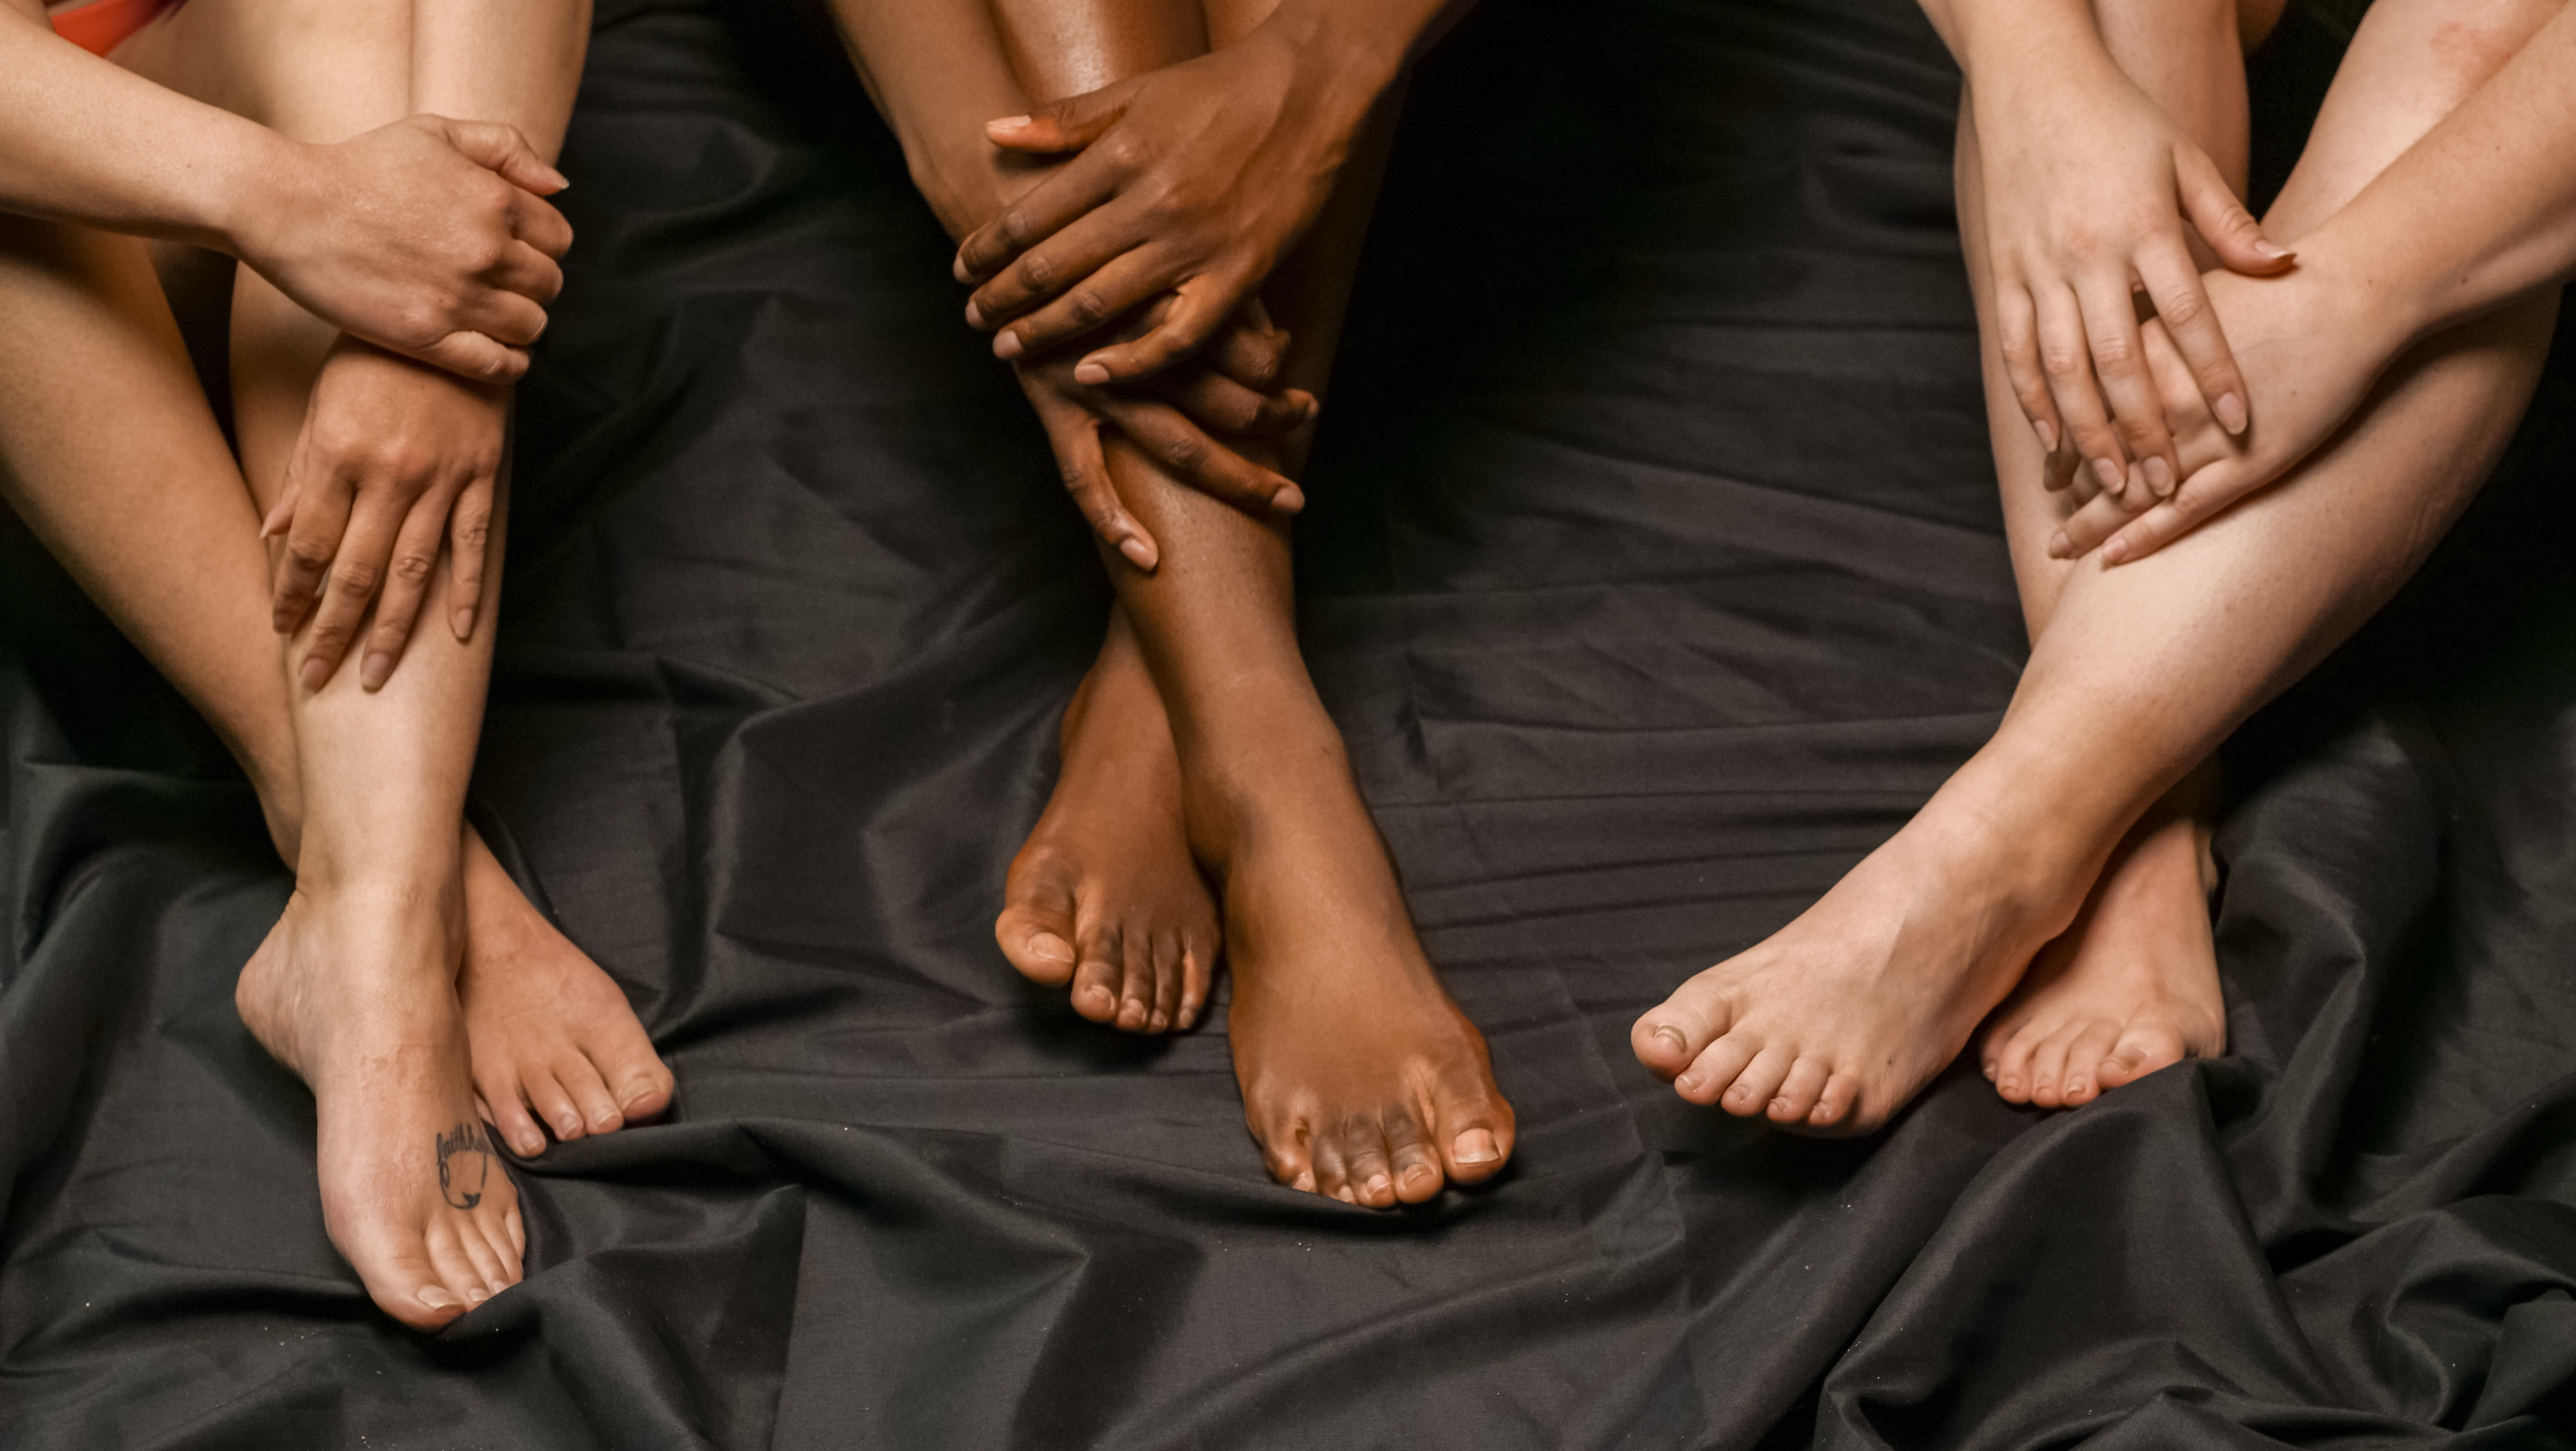 Three people are sitting on a black silk sheet with their feet crossed and their hands on wrapped around their knees.